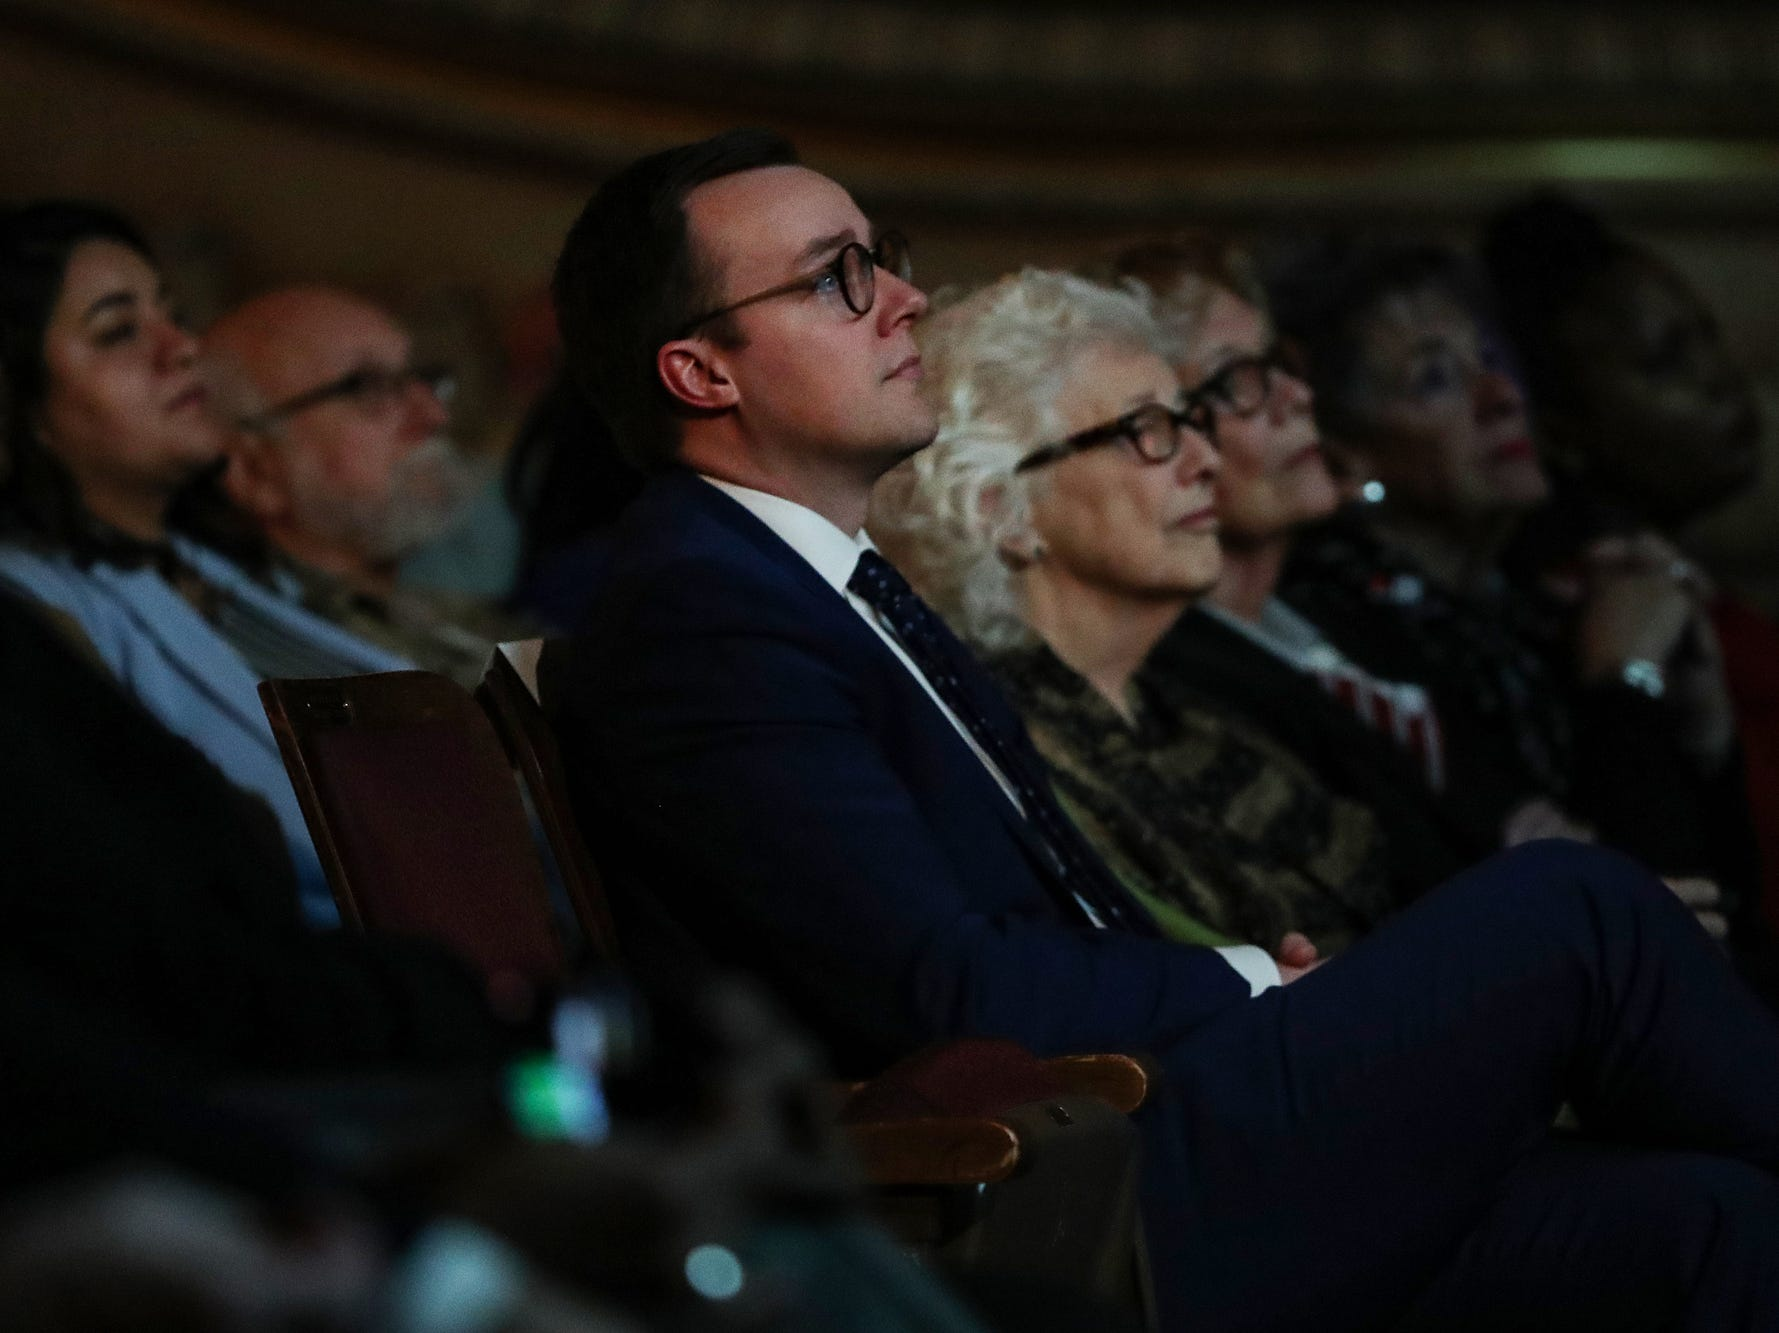 South Bend Mayor Pete Buttigieg's husband Chasten and other family members listen as Buttigieg delivers his final State of the City address in South Bend, Ind. on Tuesday, March 12, 2019.